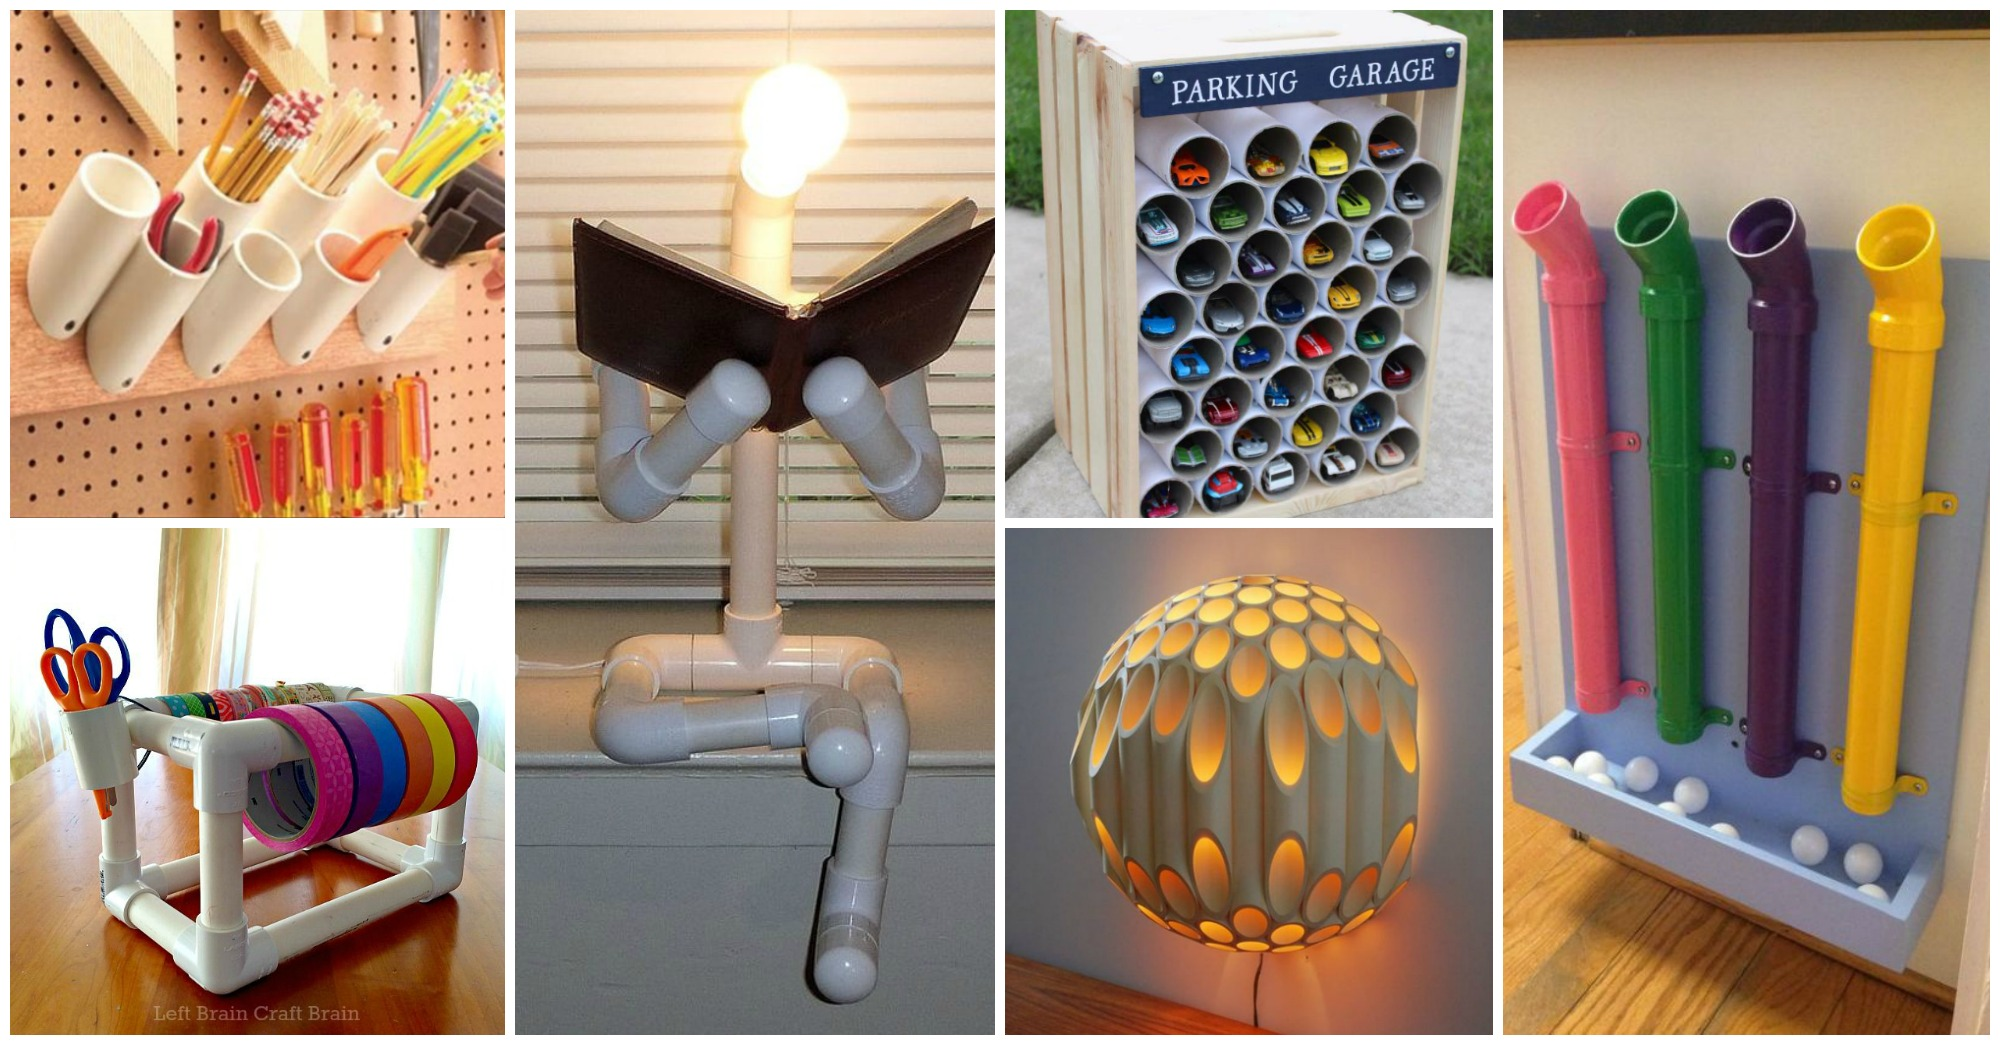 45 creative uses of pvc pipes in your home and garden - Home And Garden Design